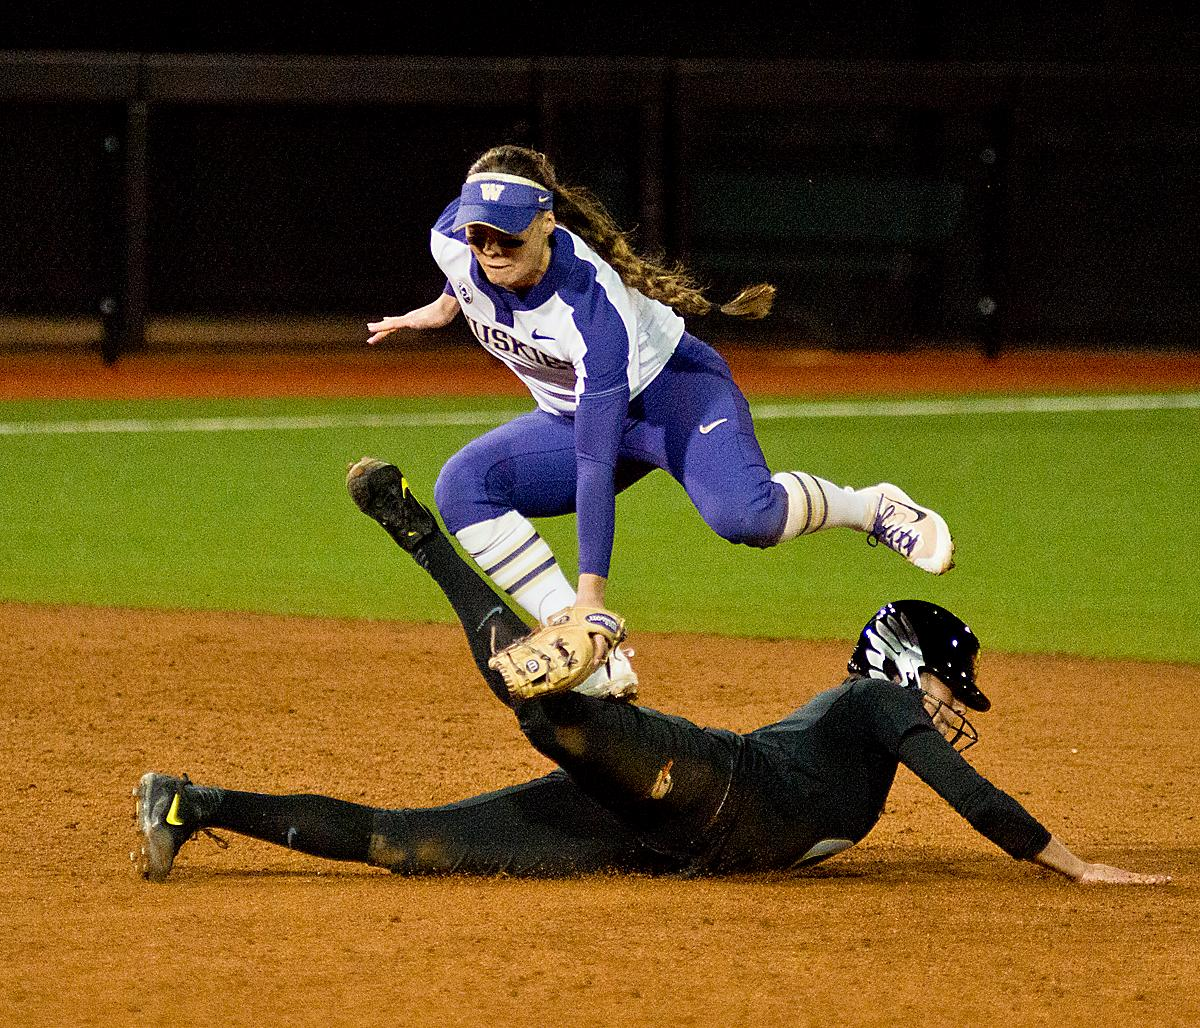 Ducks Nikki Urida (#3) slides safely into second base as Huskies Sis Bates (#22) is unable to secure the throw.  In Game Two of a three-game series, the University of Oregon Ducks softball team defeated the University of Washington Huskies 4-1 Friday night in Jane Sanders Stadium. Danica Mercado (#2), Alexis Mack (#10) and Mia Camuso (#7) all scored in the win, Mack twice. The Ducks play the Huskies for the tie breaker on Saturday with the first pitch at noon. Photo by Dan Morrison, Oregon News Lab